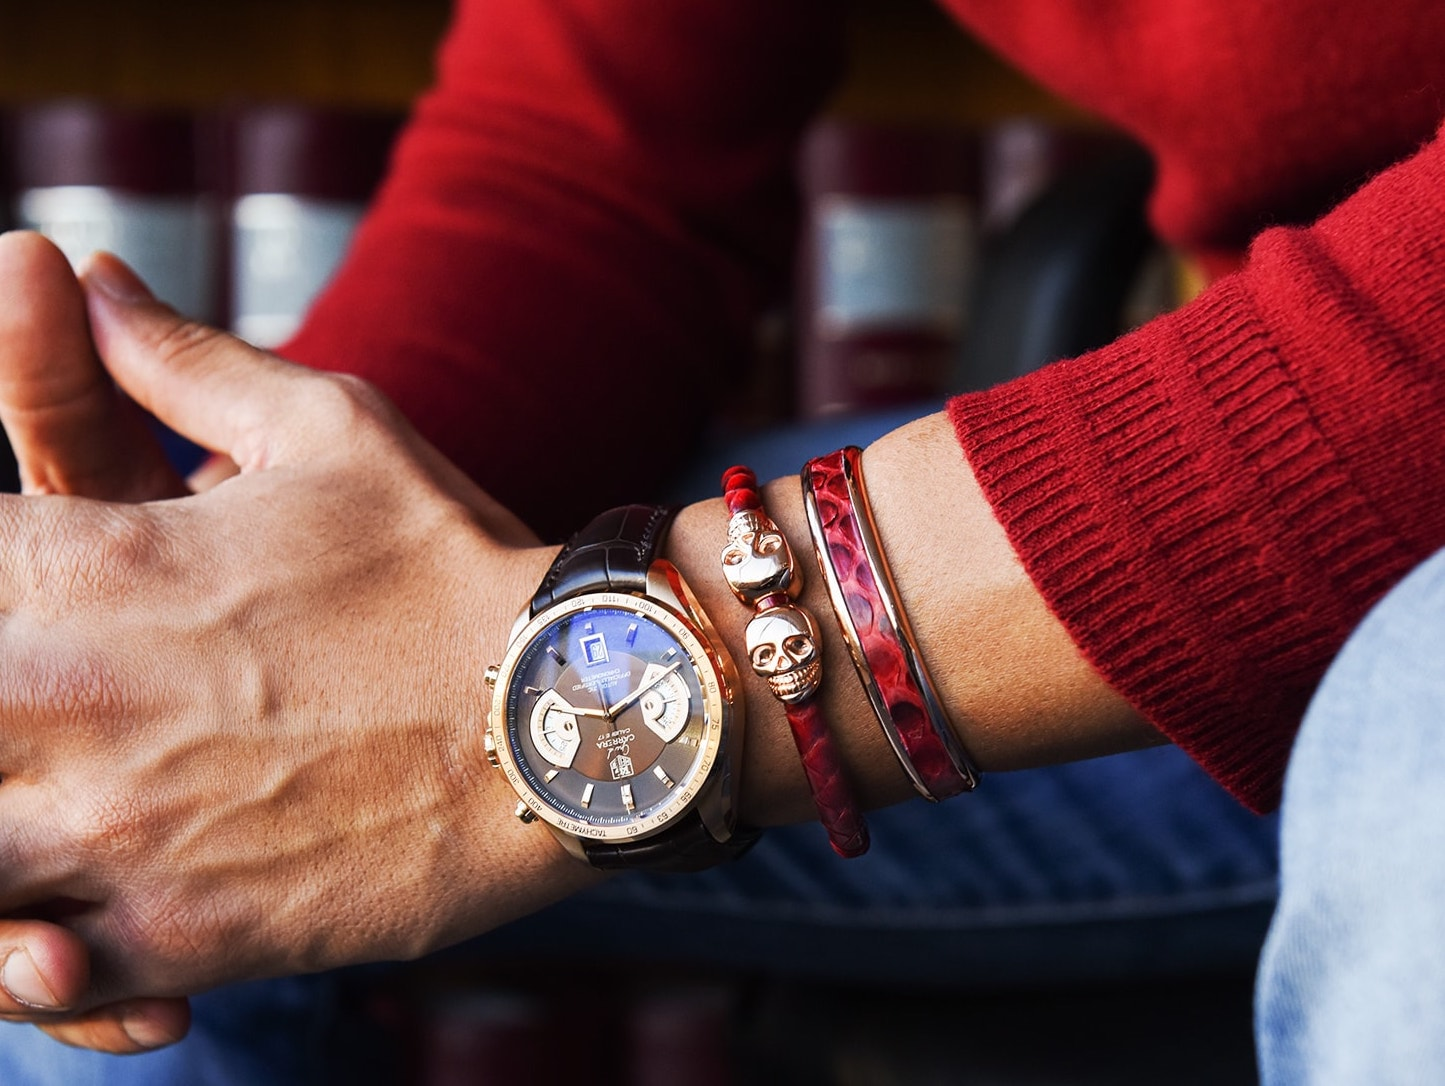 Skull Bracelet Collection Displayed on Wrist, while sitting